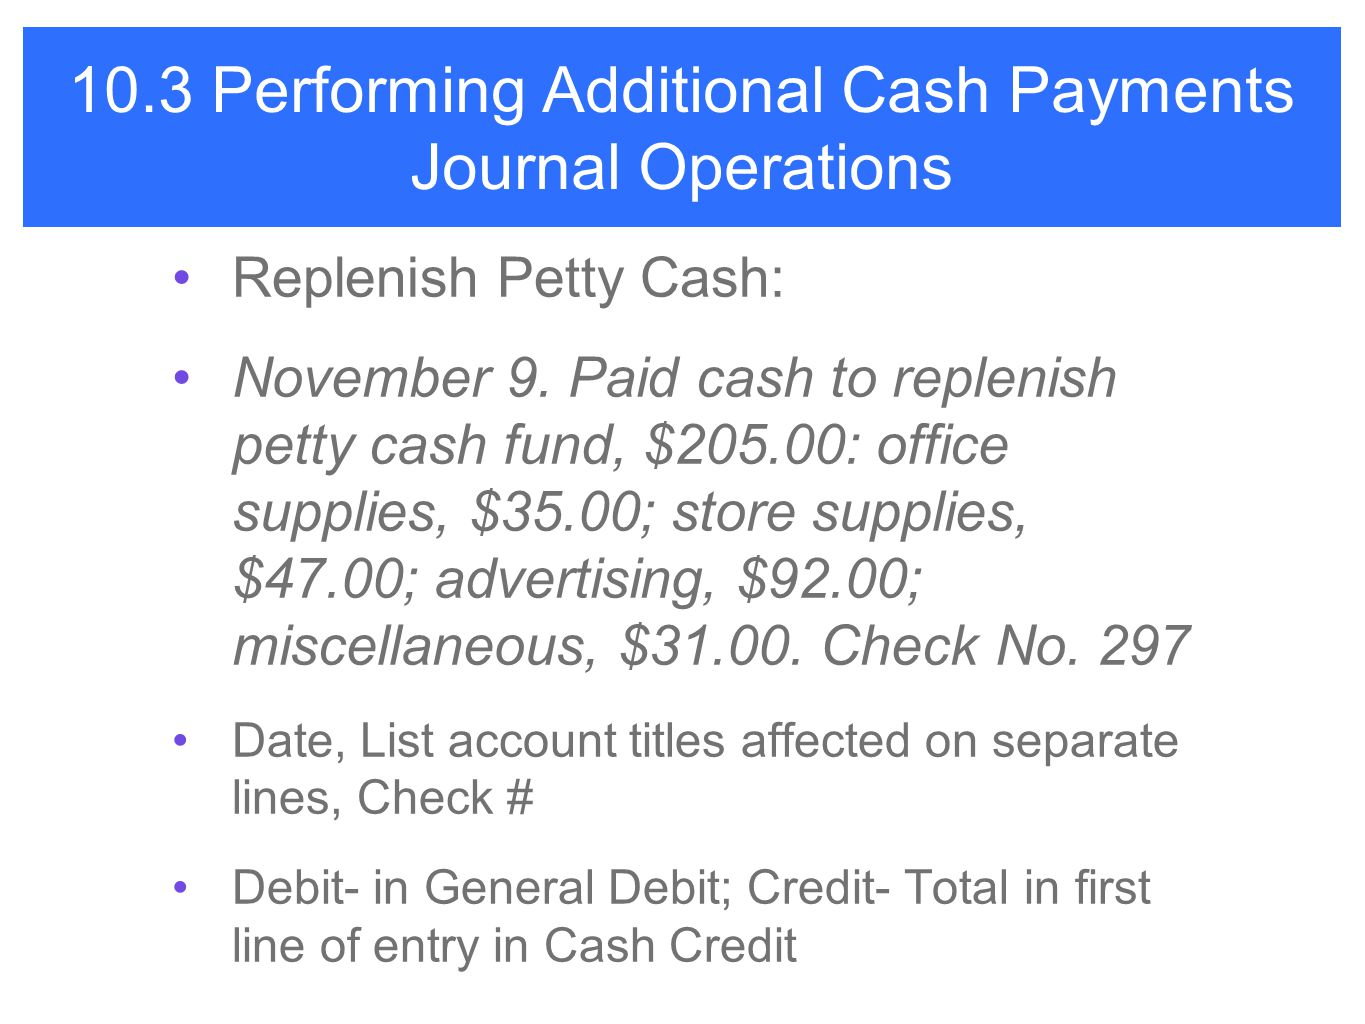 10.3 Performing Additional Cash Payments Journal Operations